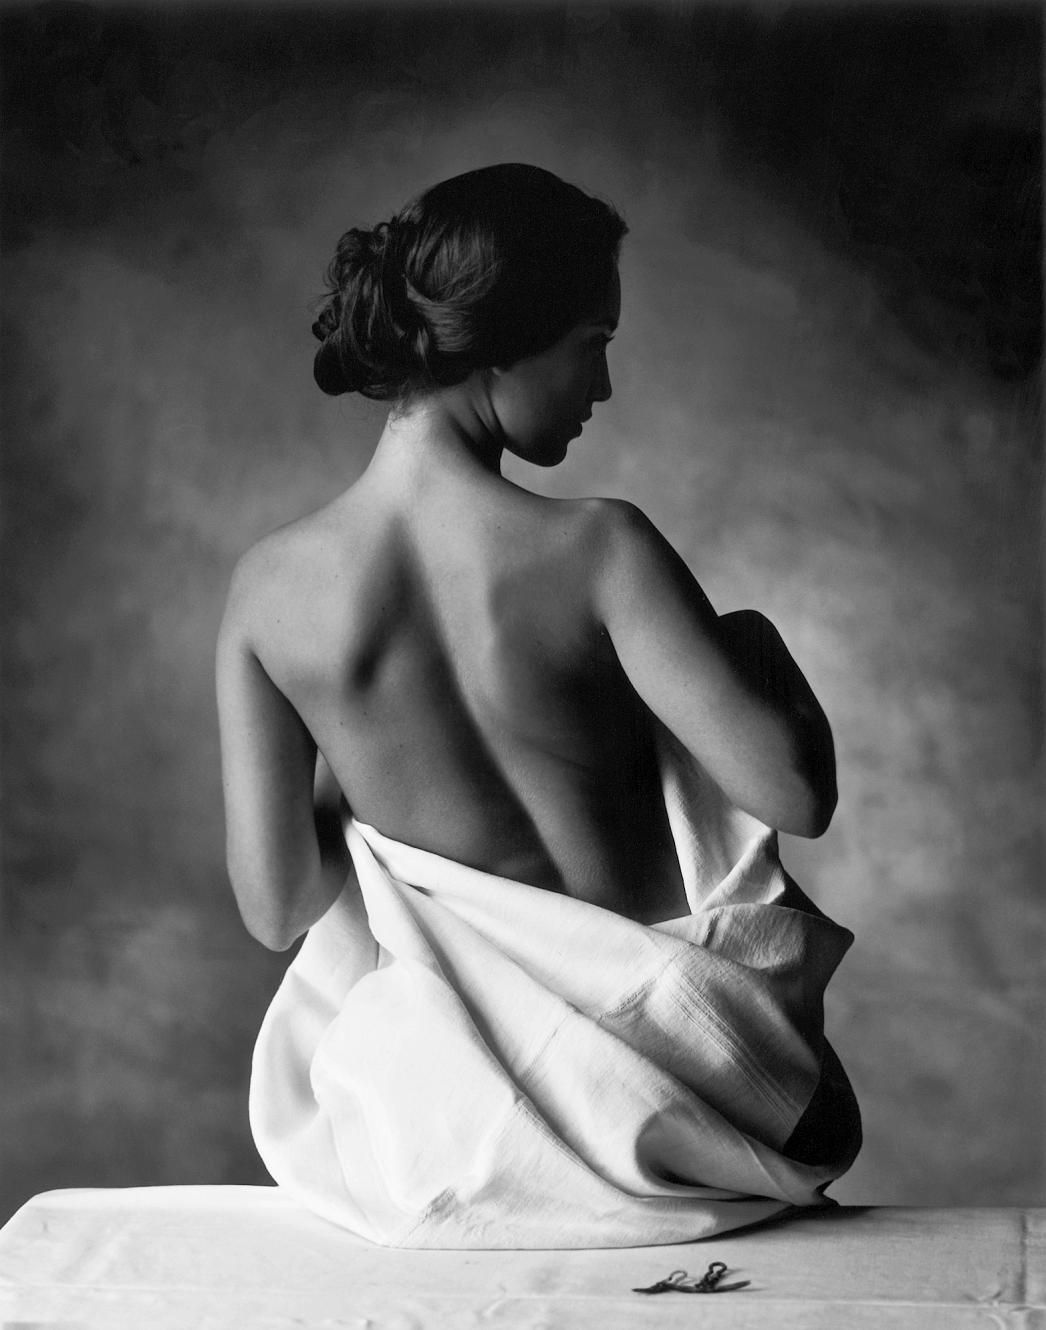 Christian Coigny   Photo shoot by him!!  http://www.christiancoigny.com/artwork-portfolio/43-men-women/image/#486